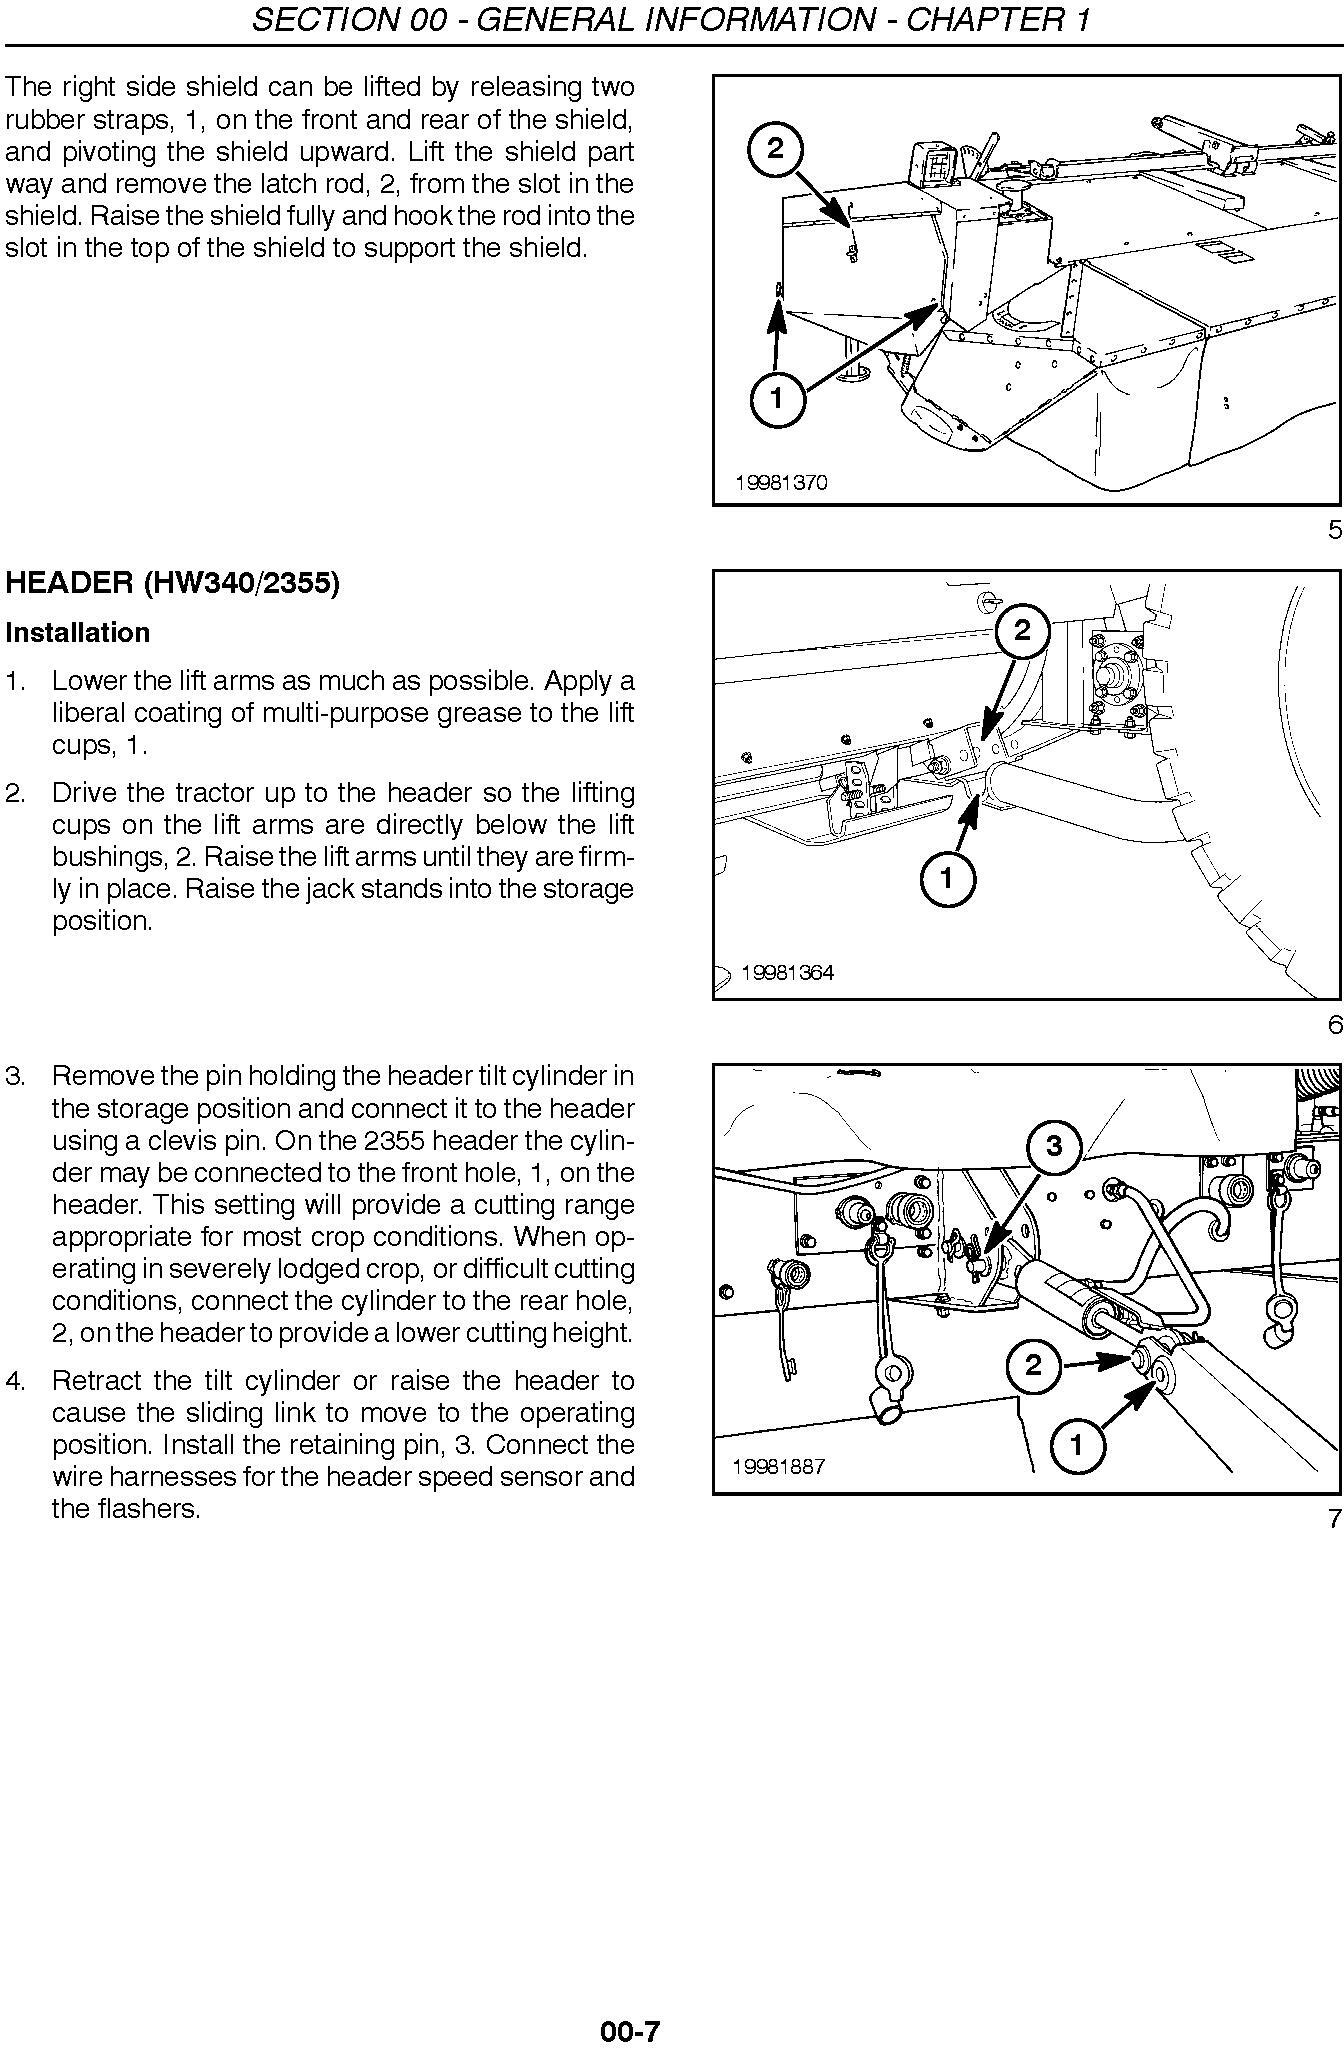 New Holland 2355 and 2358 Disc Auger Header Service Manual - 1